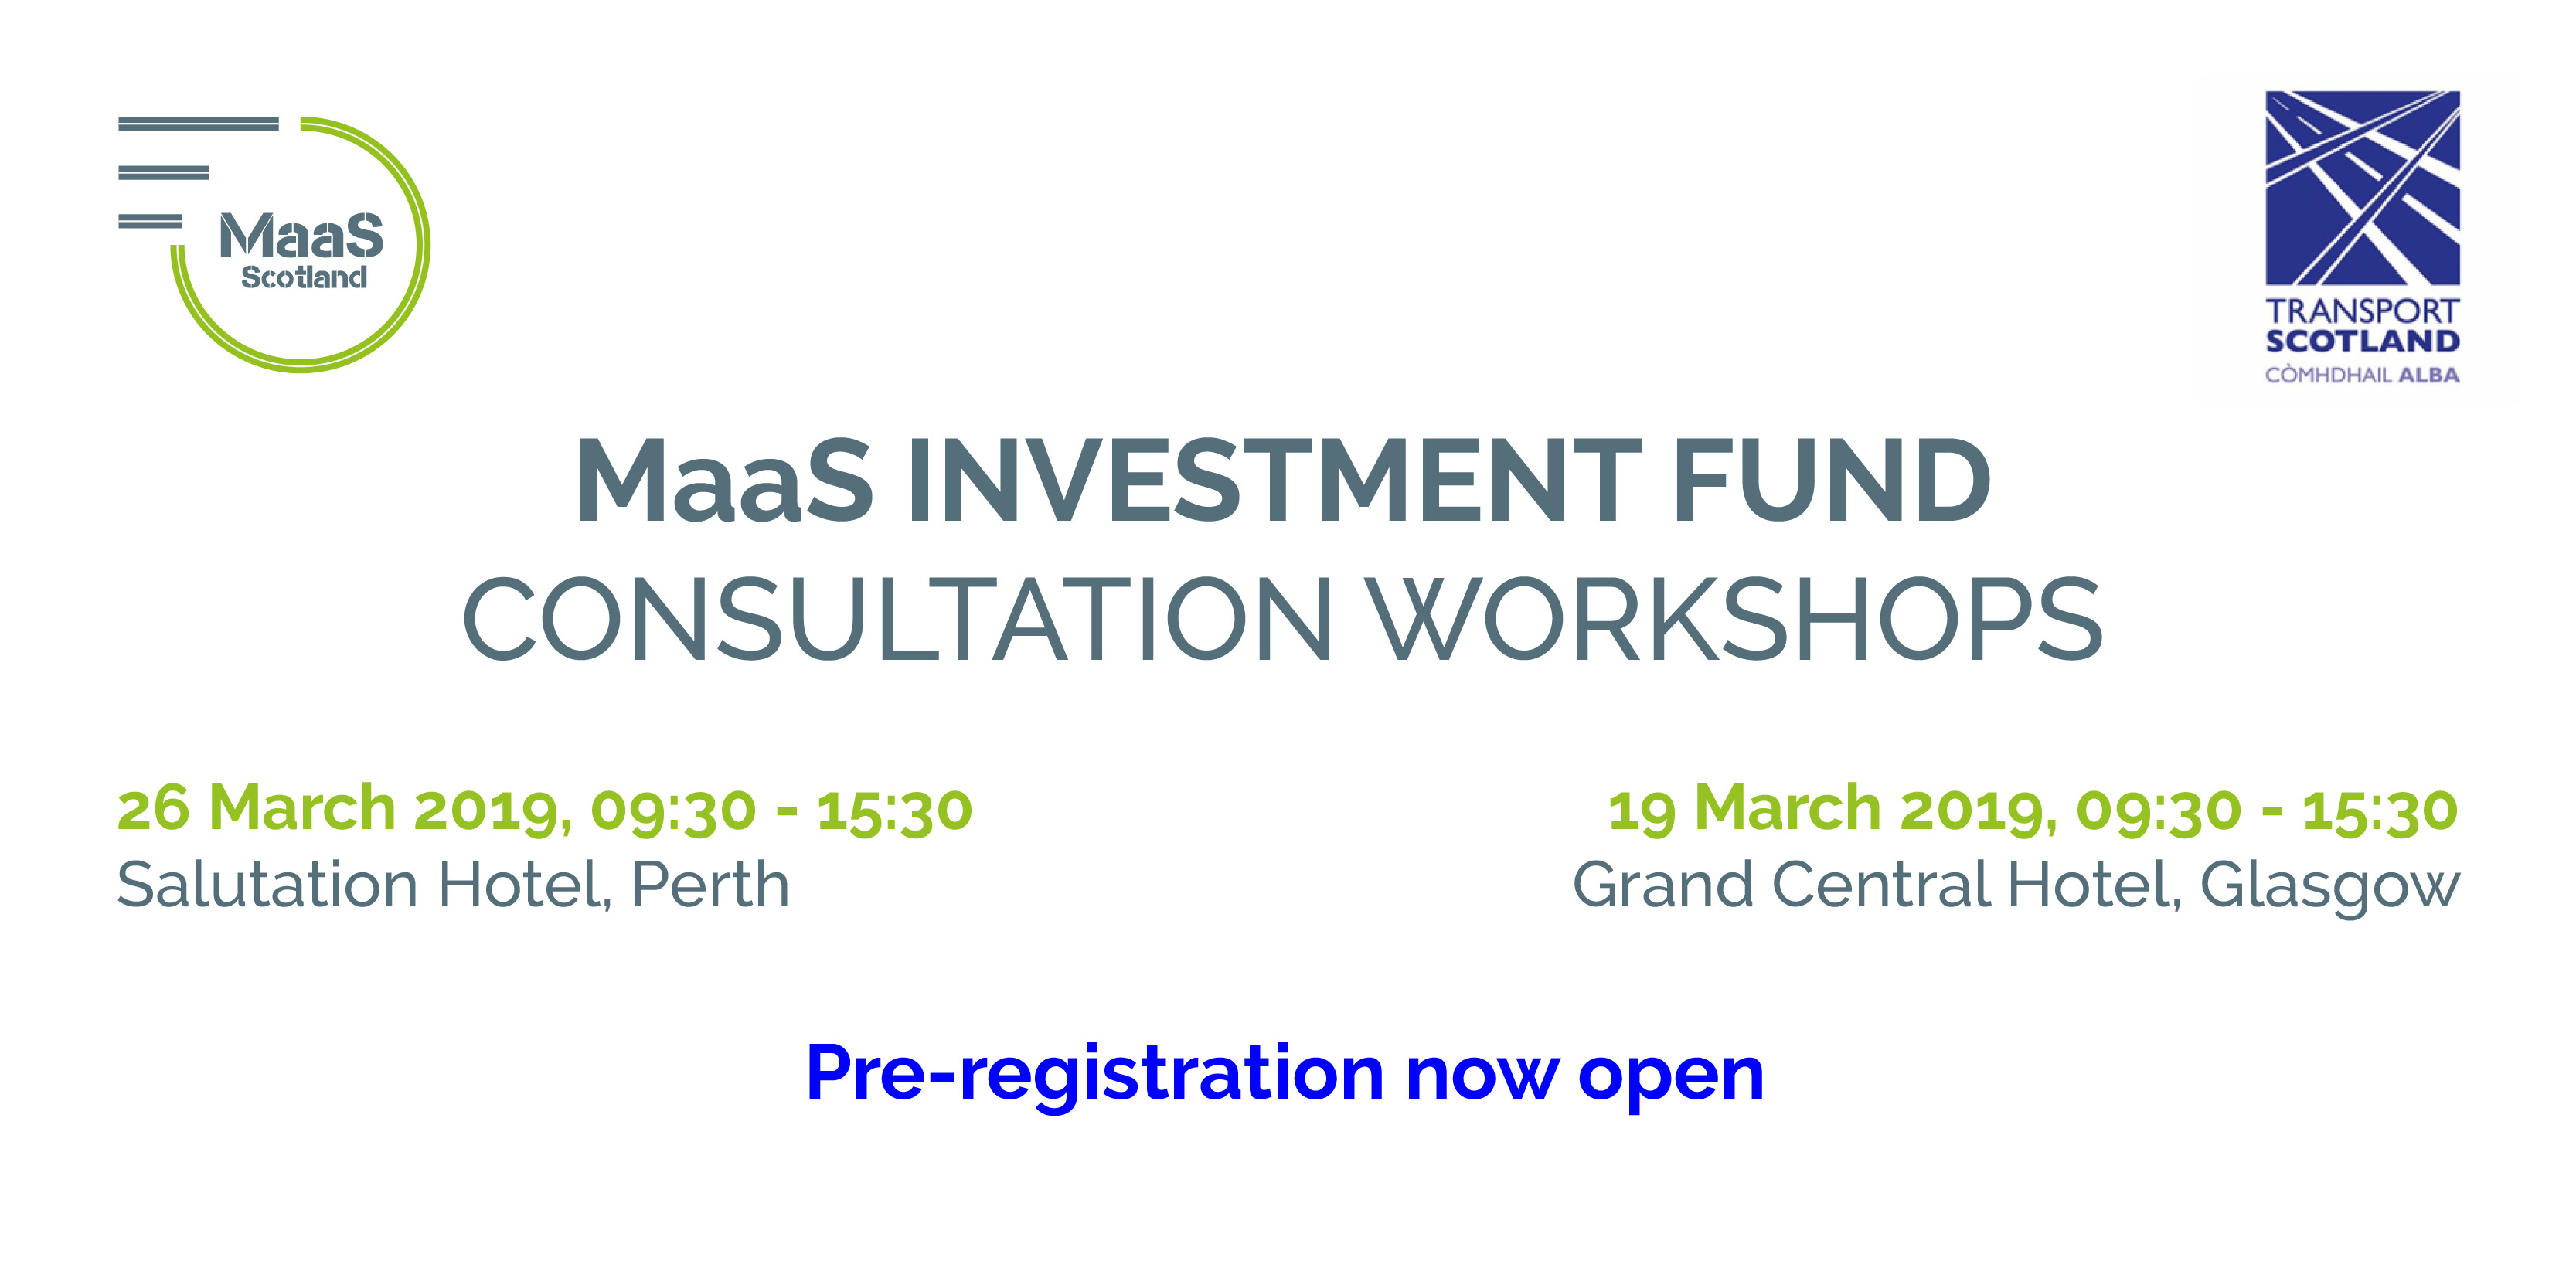 MaaS Investment Fund Consultation Workshops: Glasgow and Perth